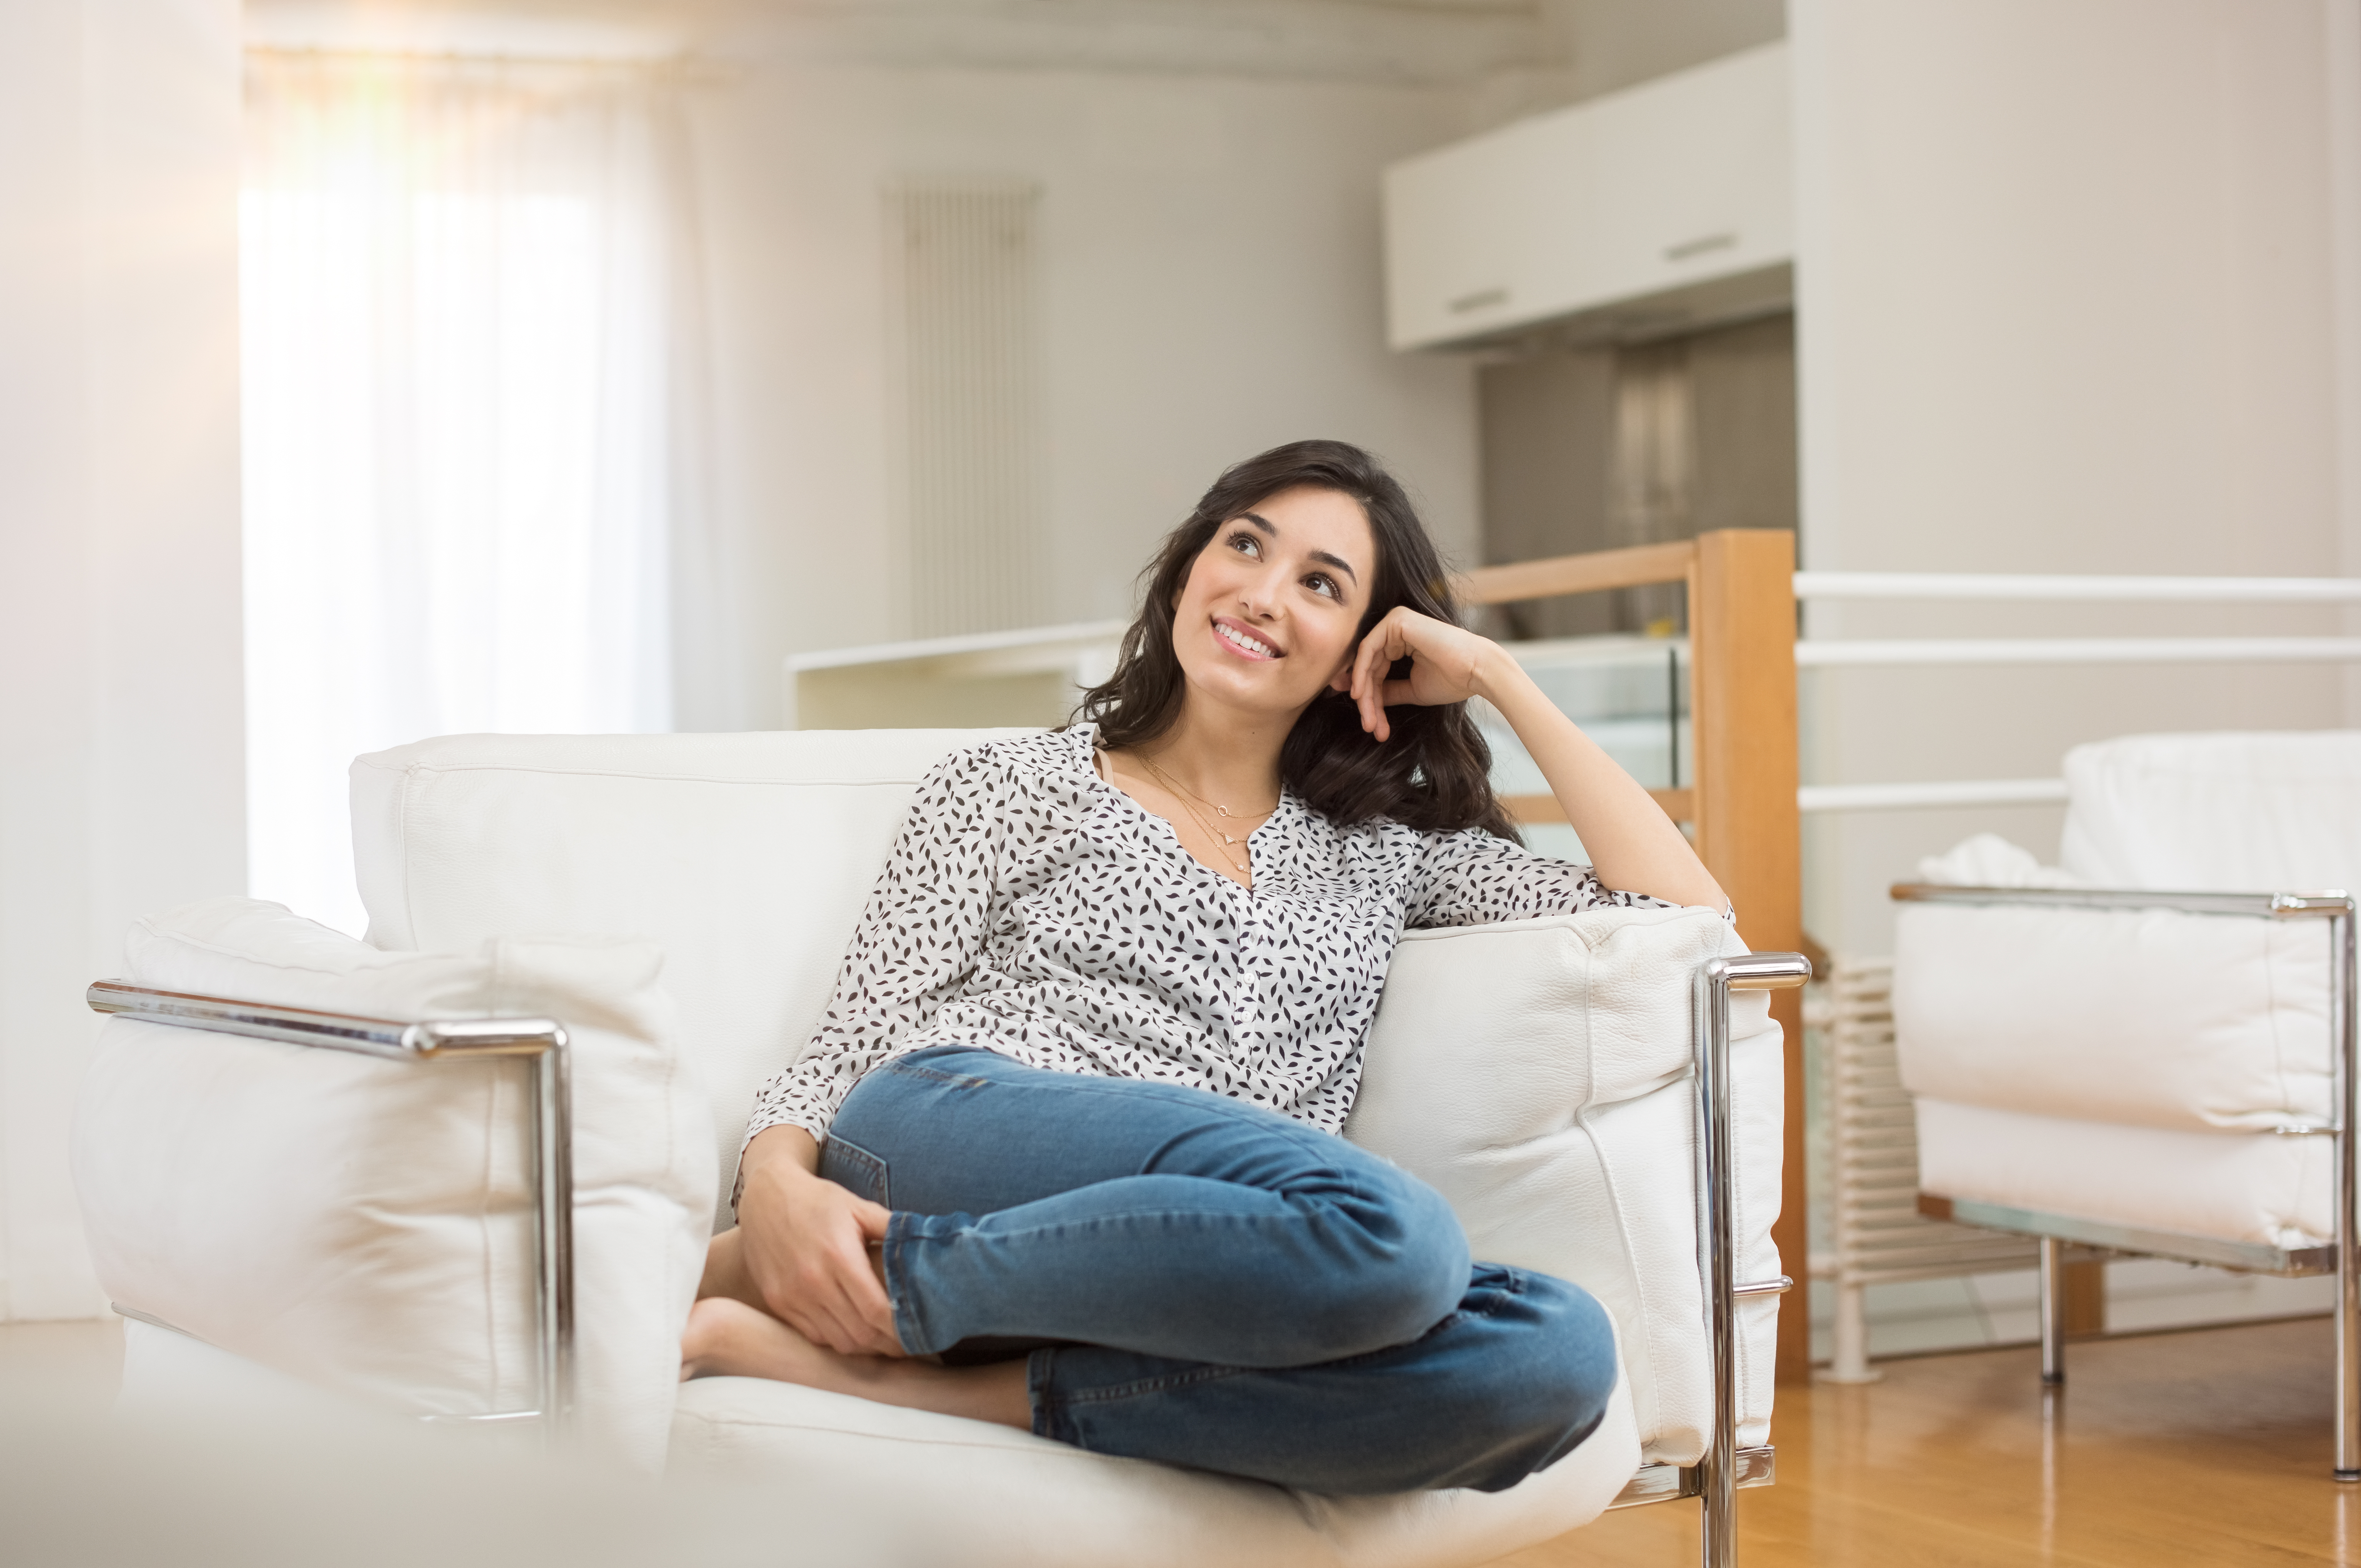 Confidence / Woman Sitting on Couch Smiling